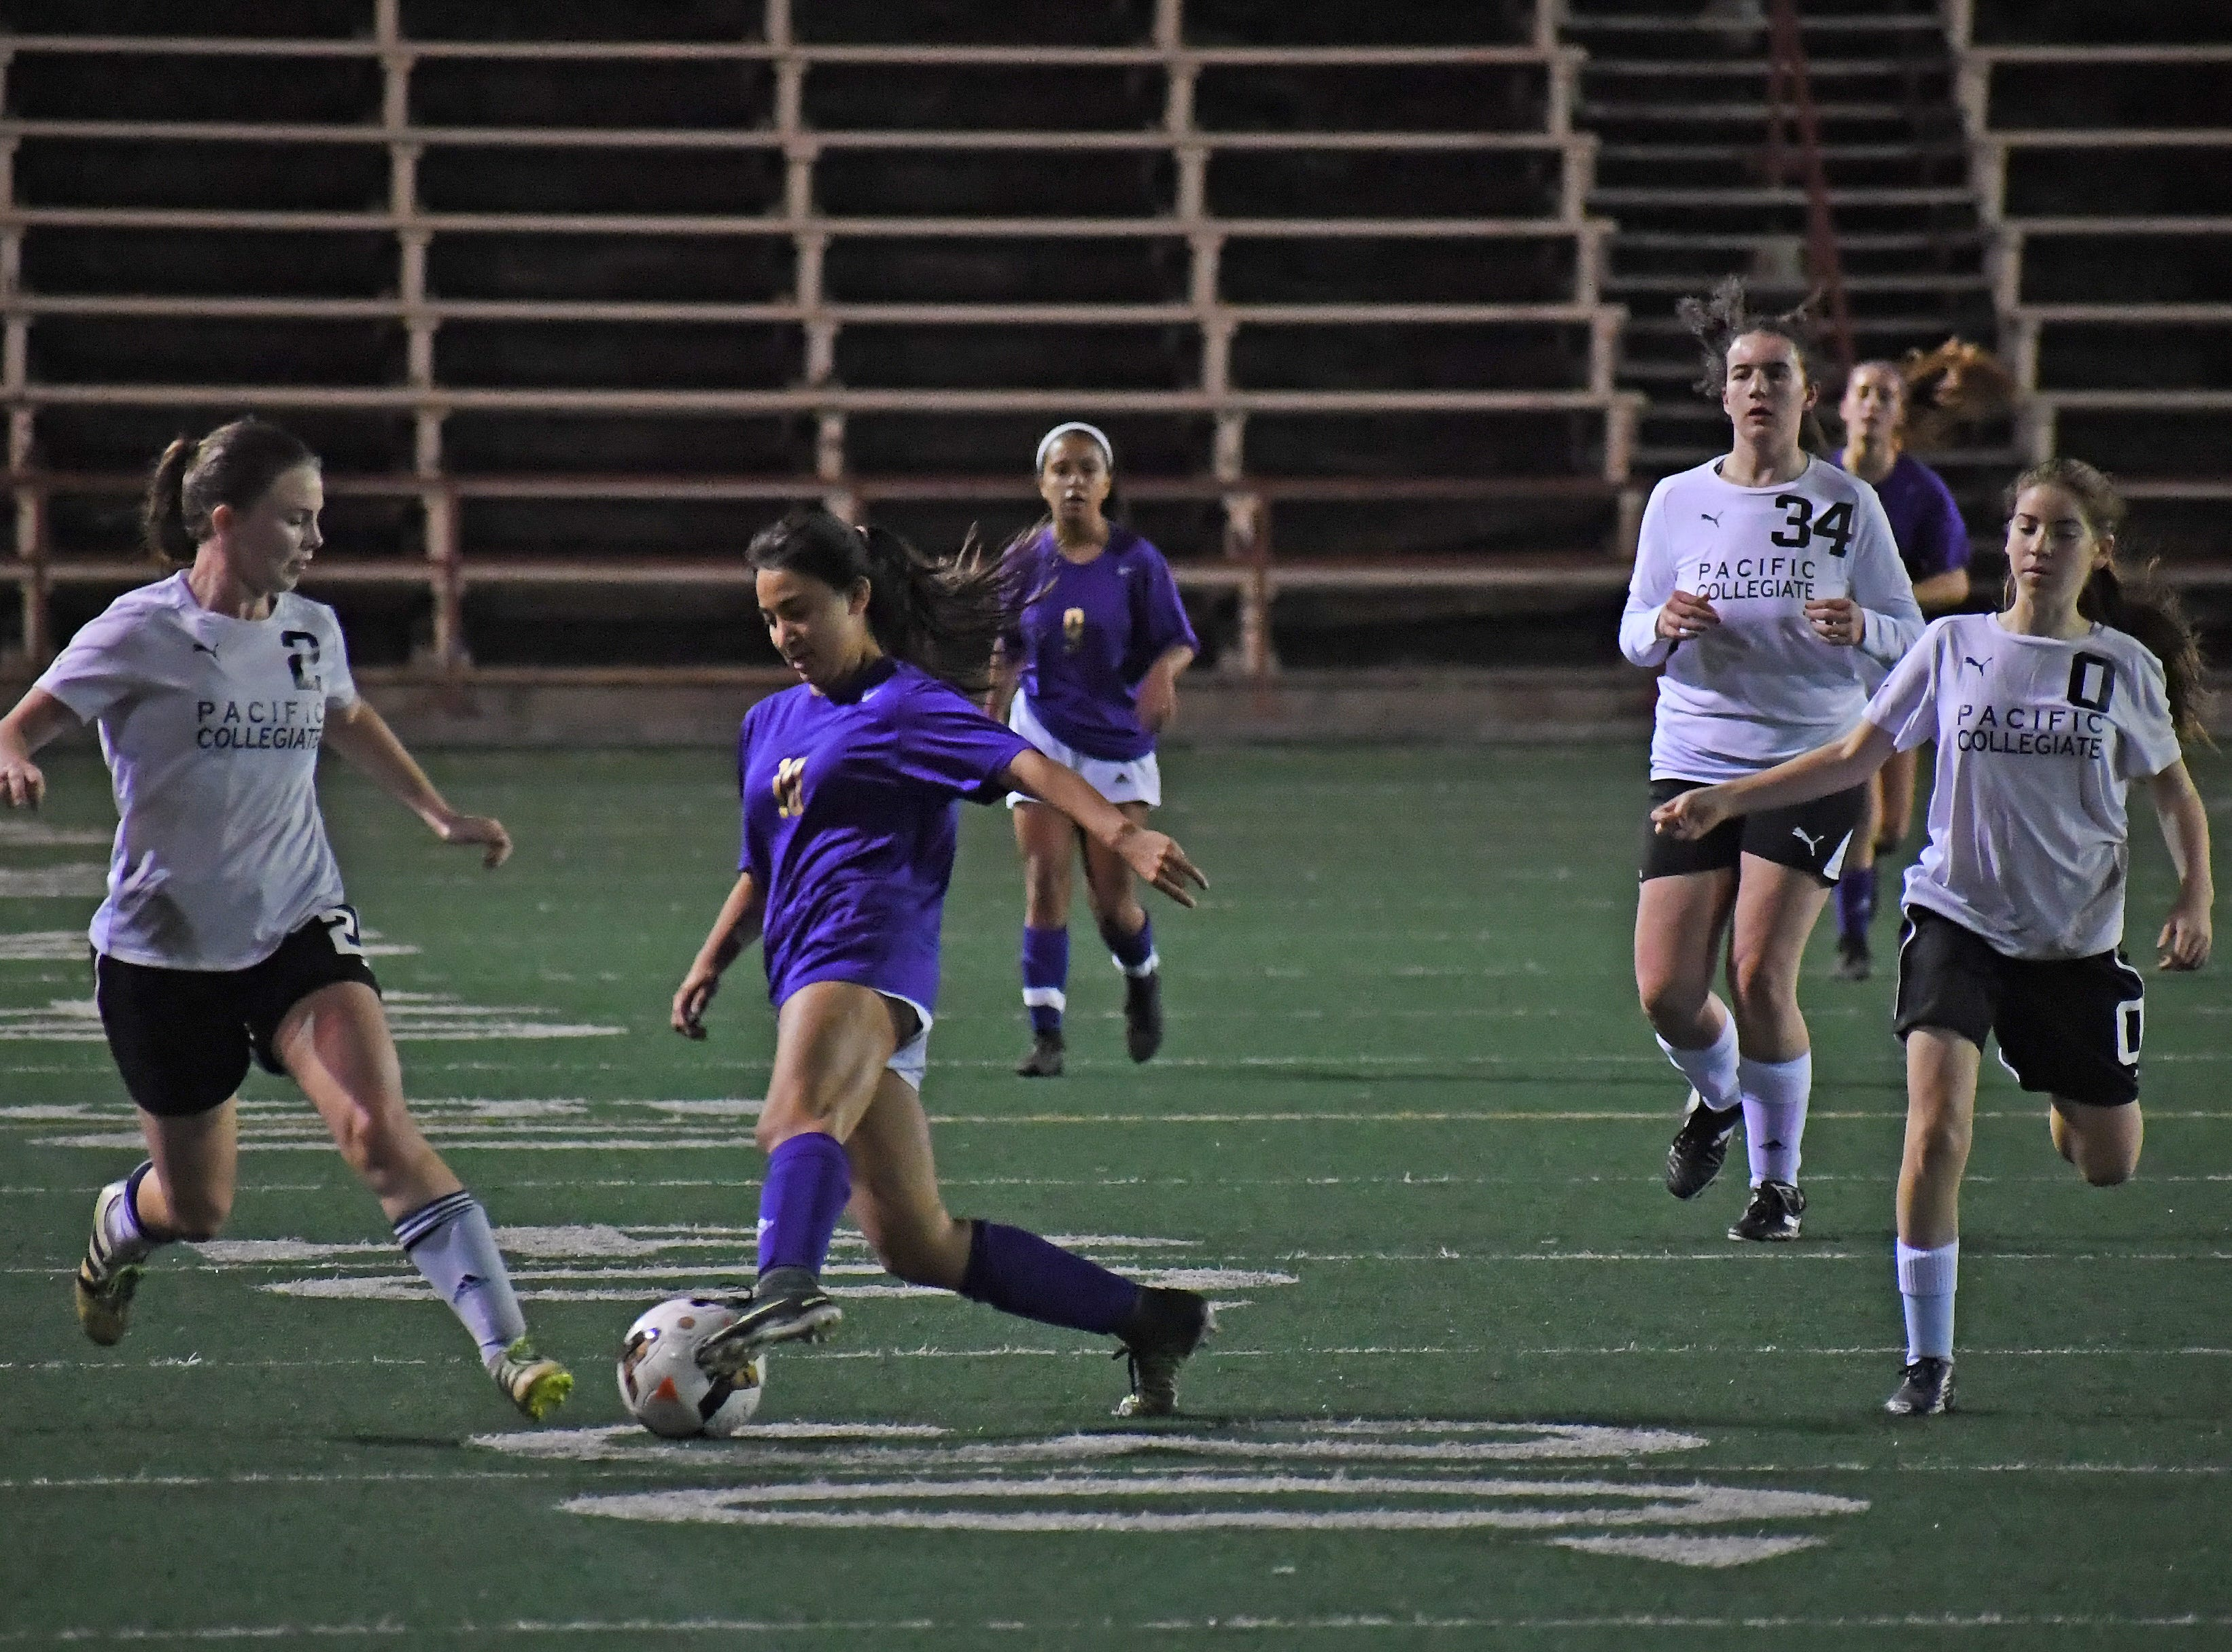 Senior Yadira Acosta (10) cuts to the outside to evade a defender.